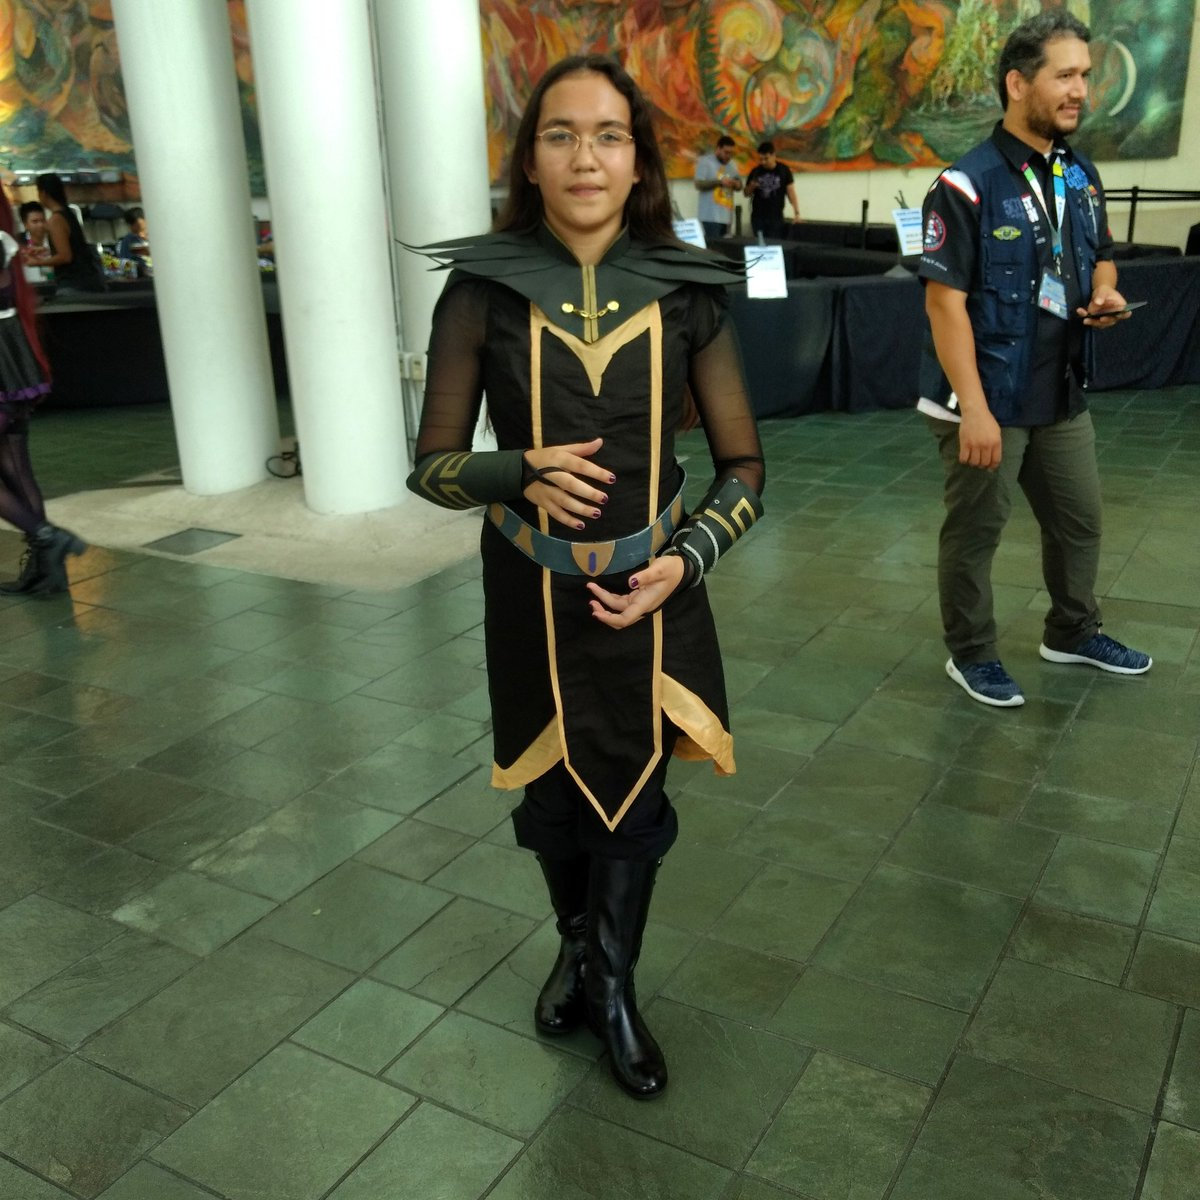 A great Claudia from The Dragon Prince #dragonprince #cosplay #comicconhonolulu2019 https://t.co/gwCykPKfaY